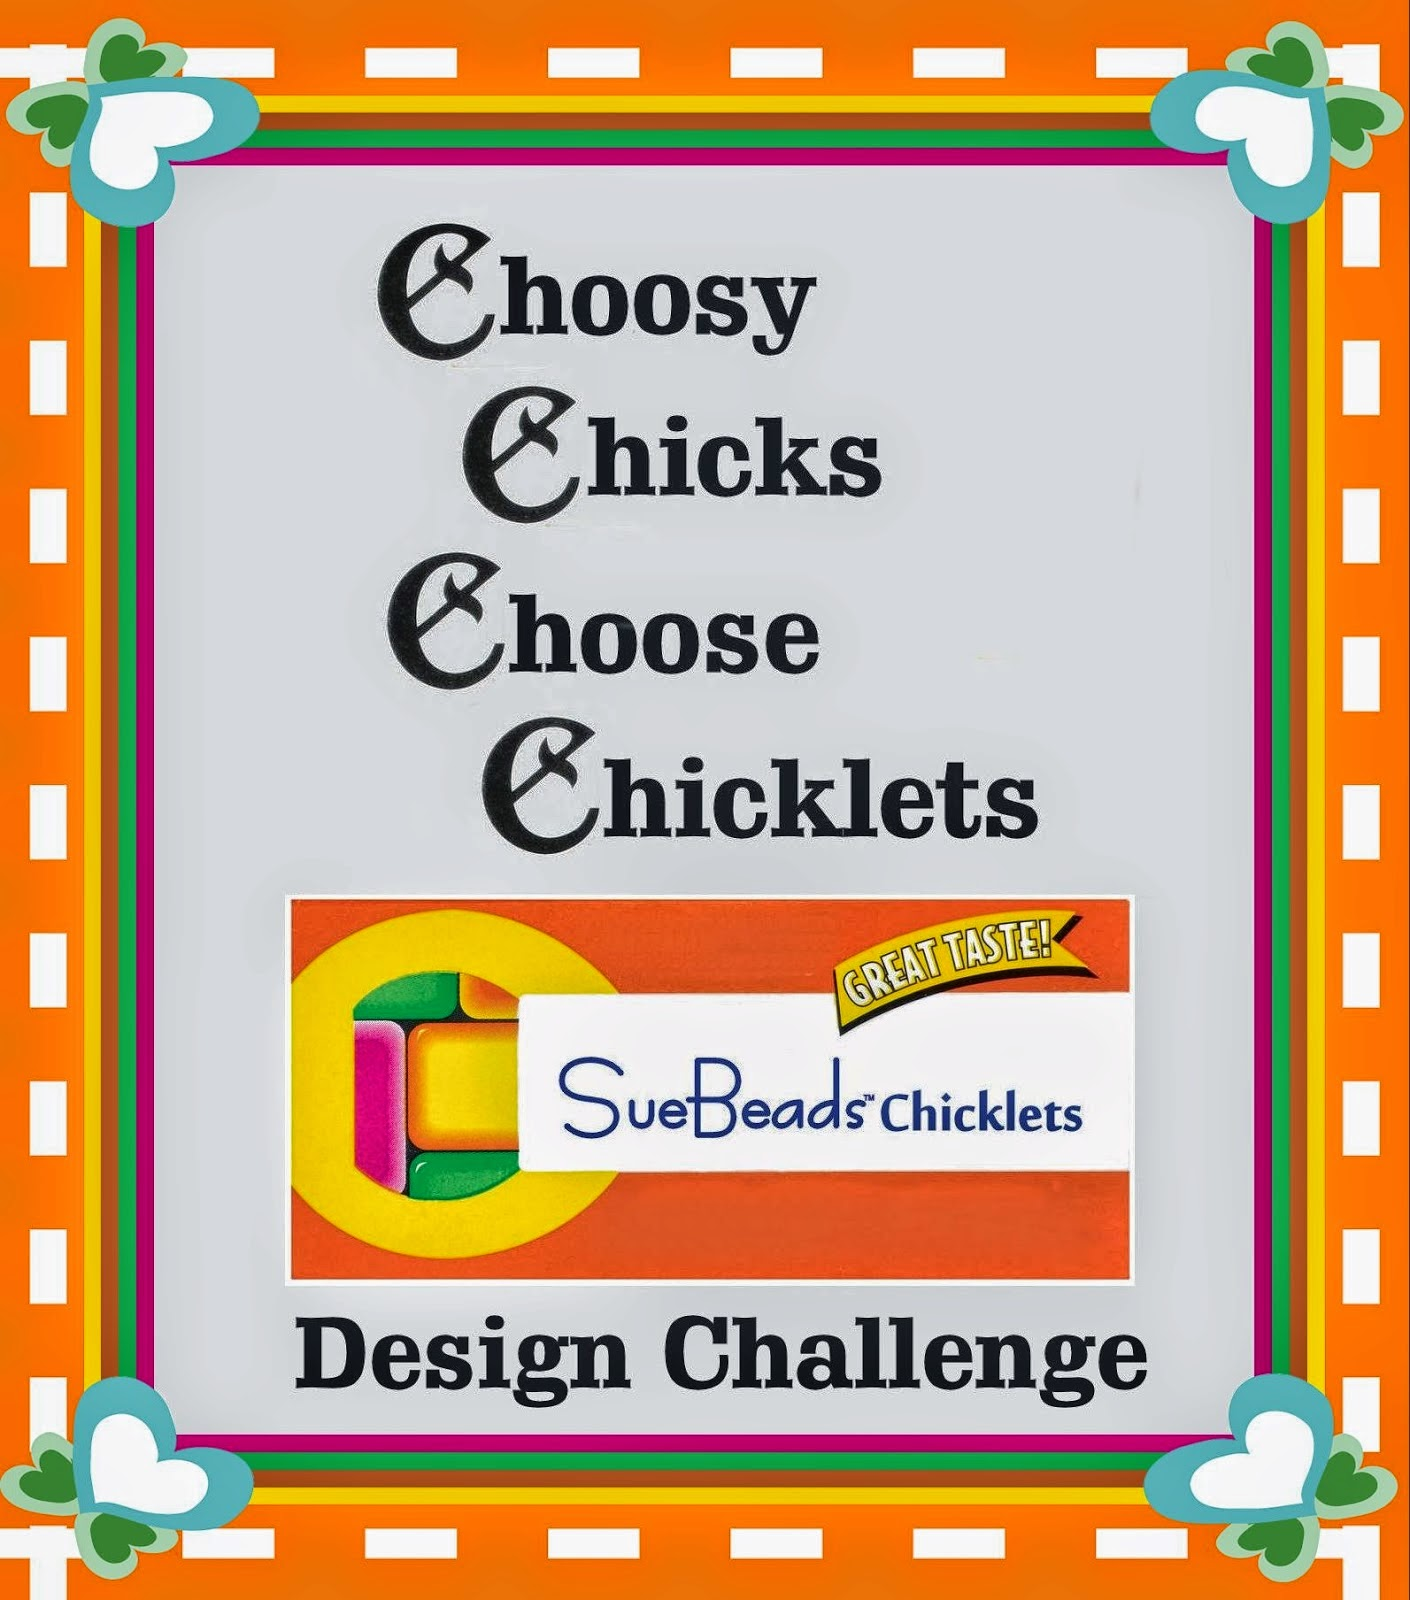 Choosy Chicks Choose Chicklets!